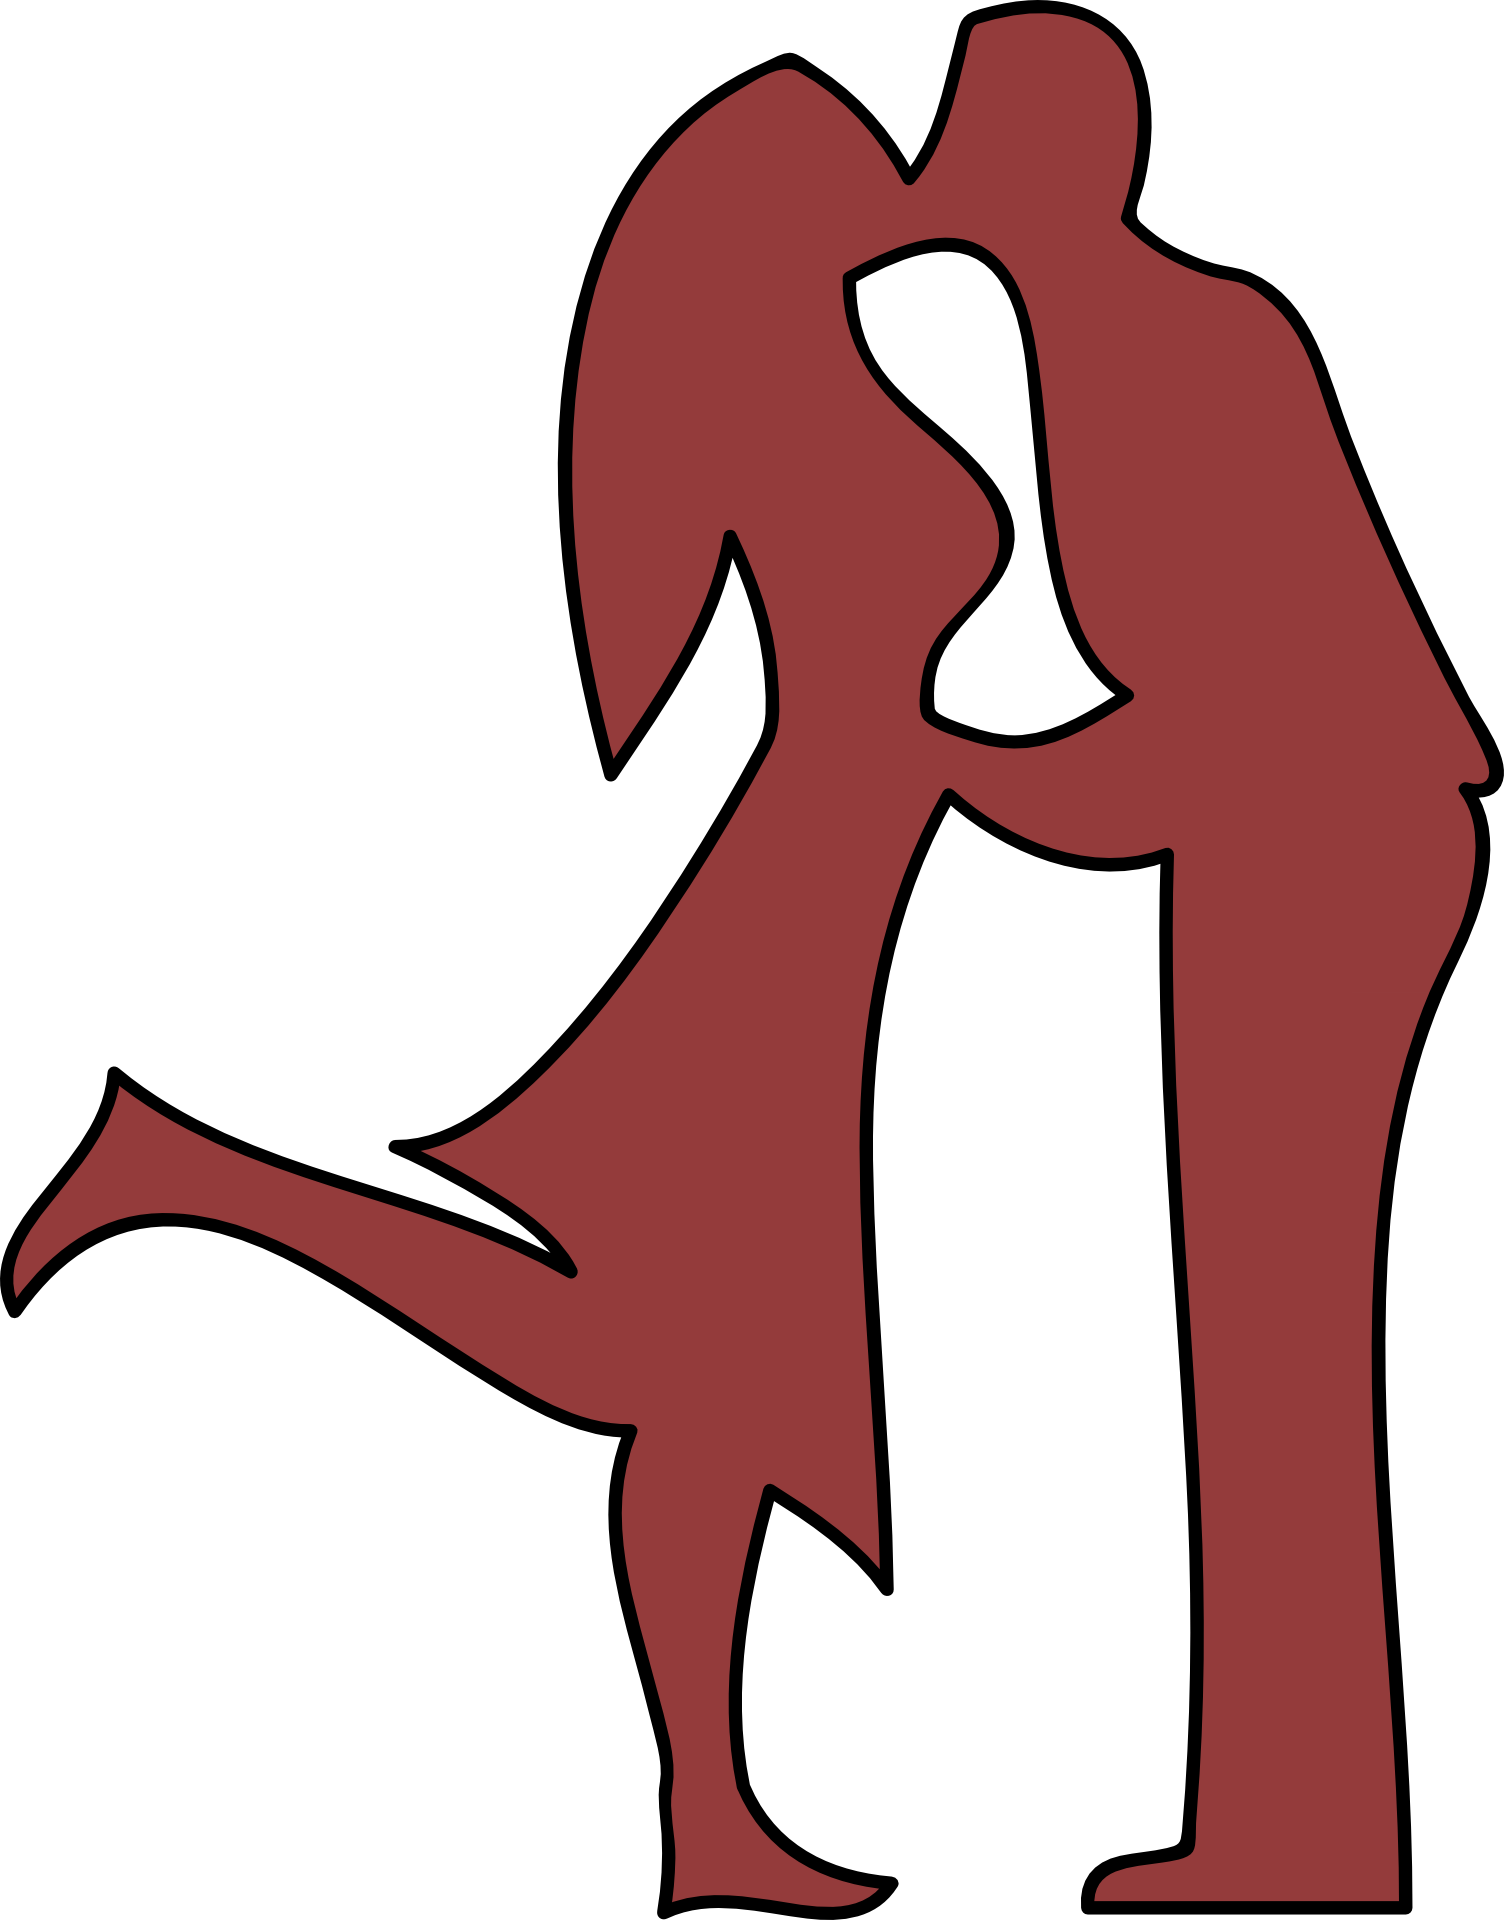 1504x1920 Silhouette Of A Kissing Couple Free Image